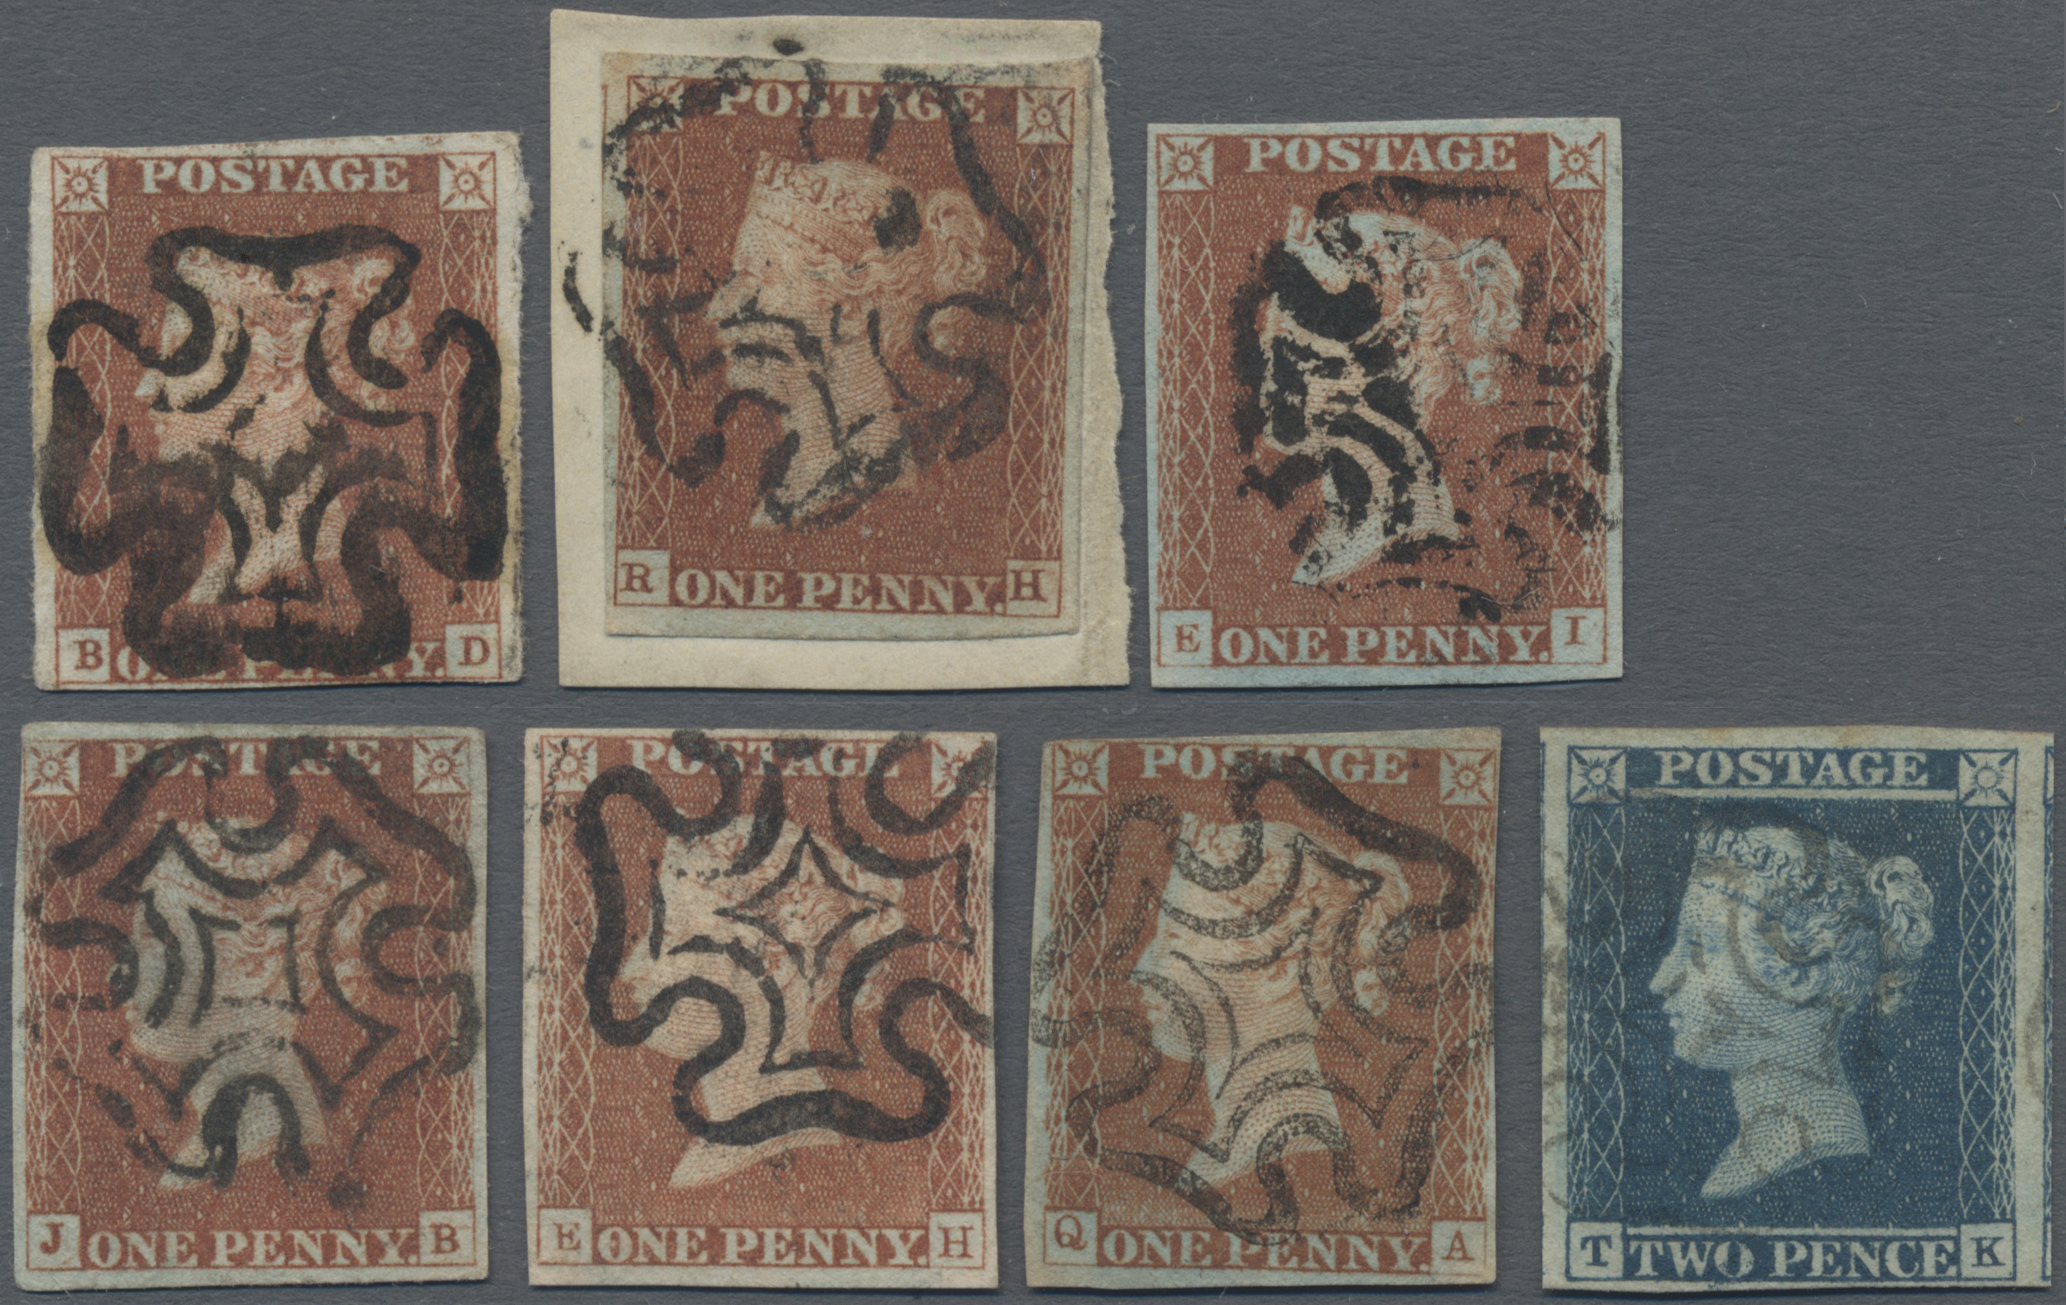 Lot 13782 - großbritannien  -  Auktionshaus Christoph Gärtner GmbH & Co. KG Sale #47 Single lots: Asia, Thematics, Overseas, Europe